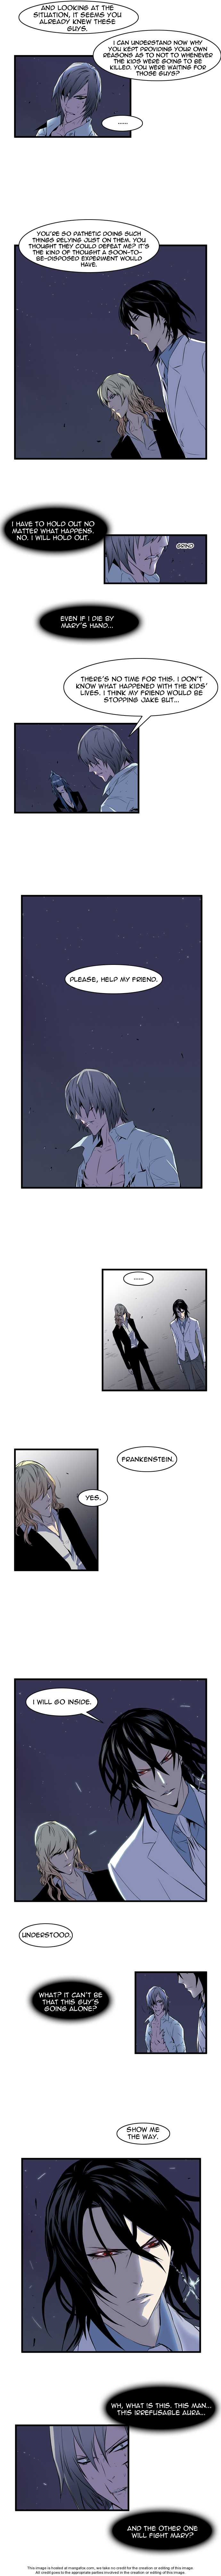 Noblesse 73 Page 2